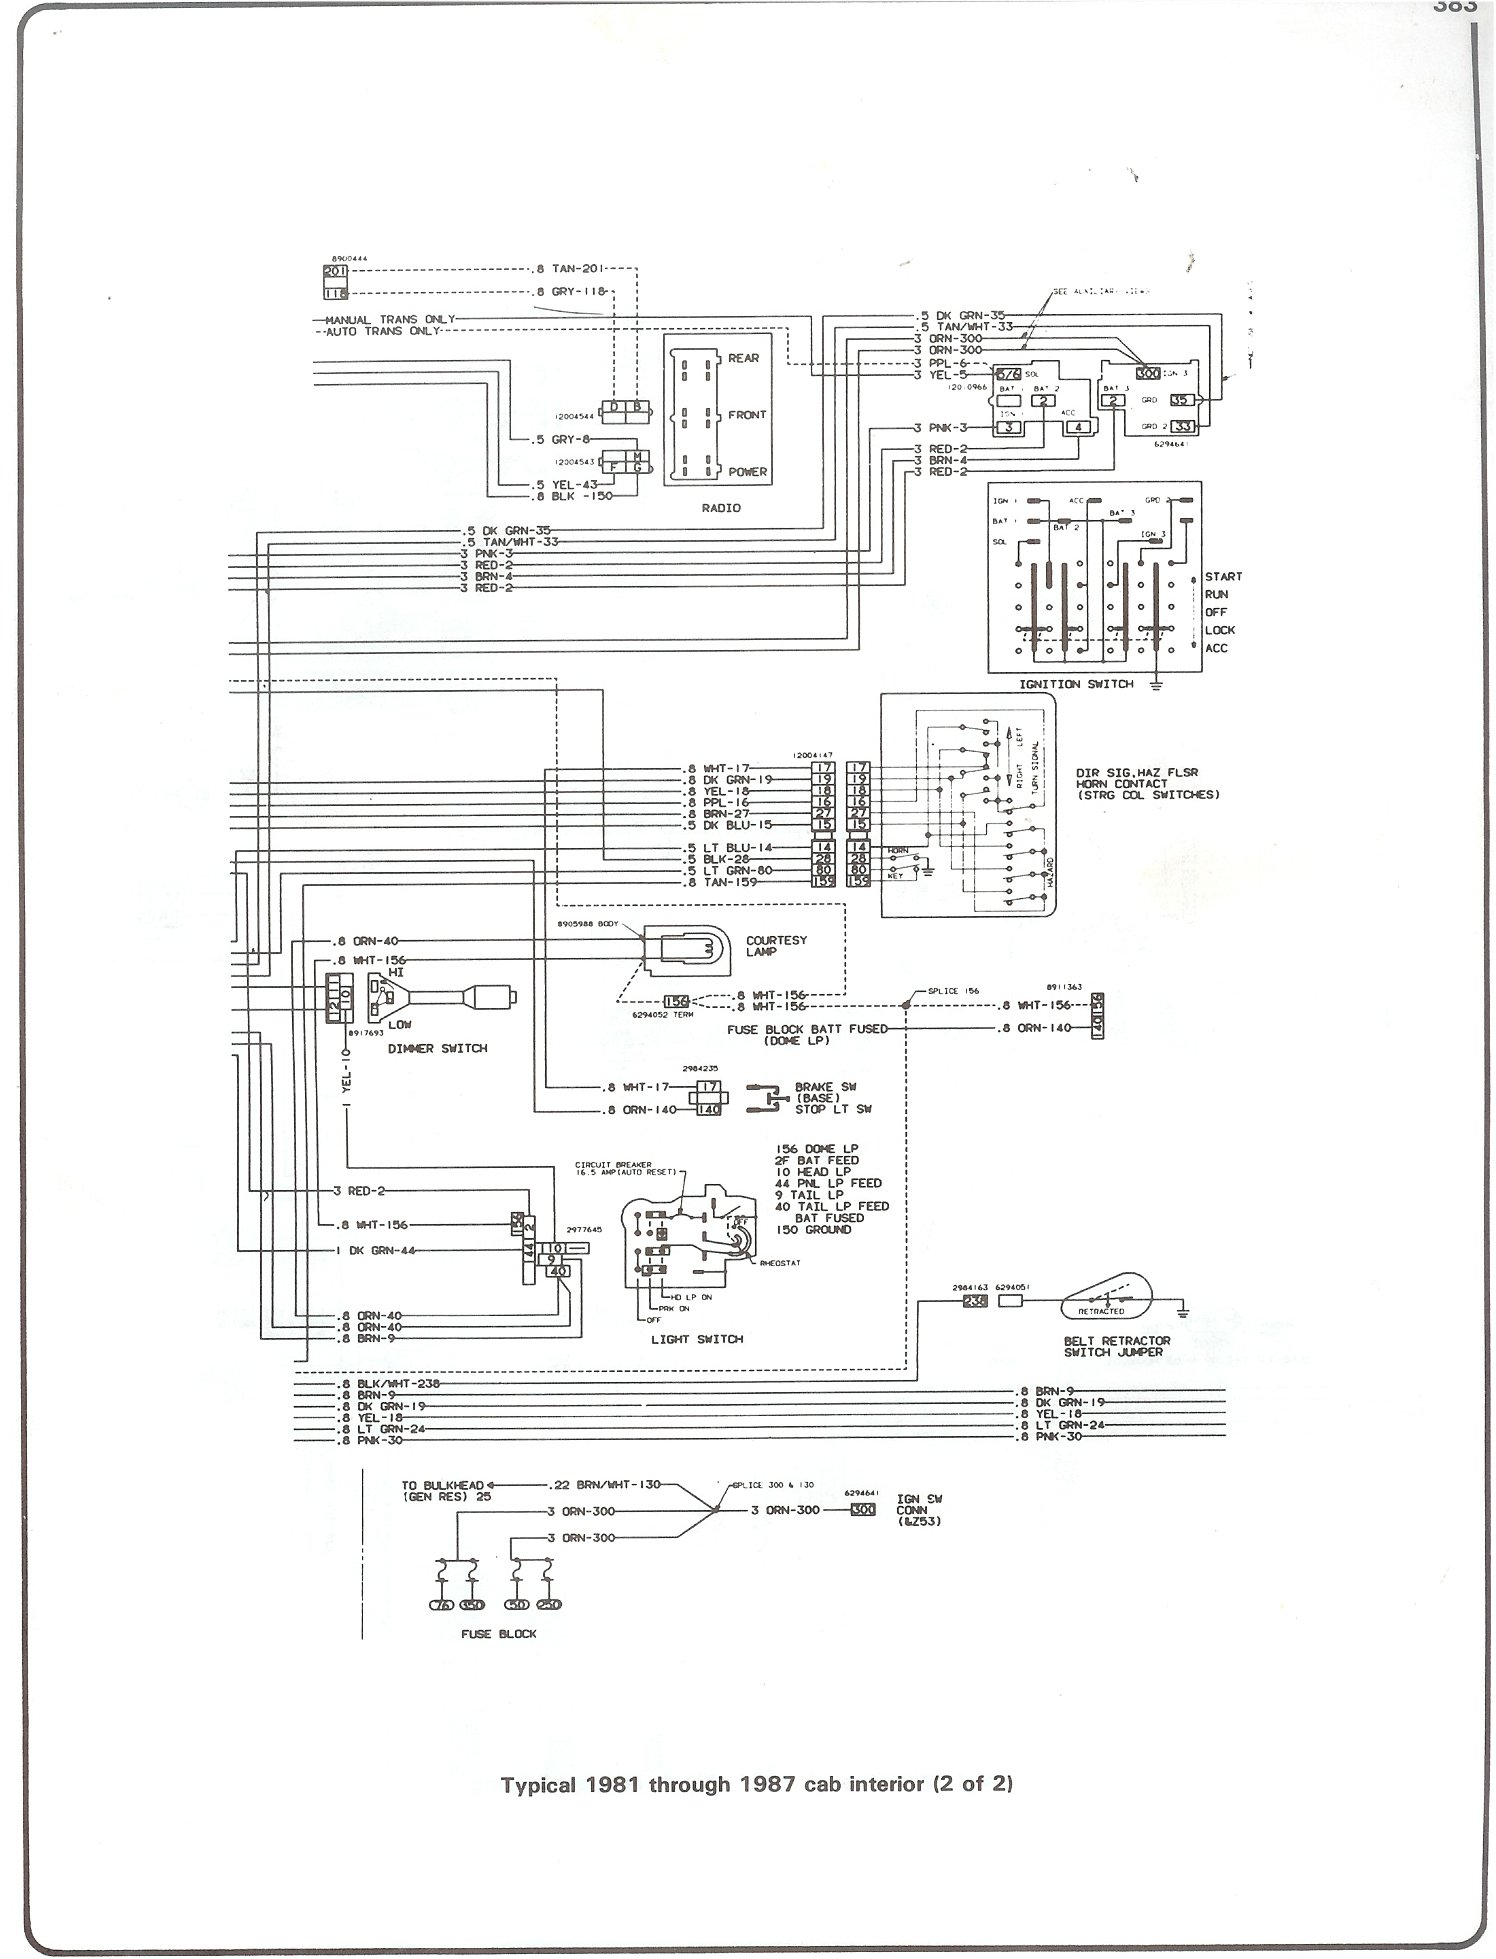 81 87_cab_inter_pg2 complete 73 87 wiring diagrams chevy truck wiring diagram at eliteediting.co